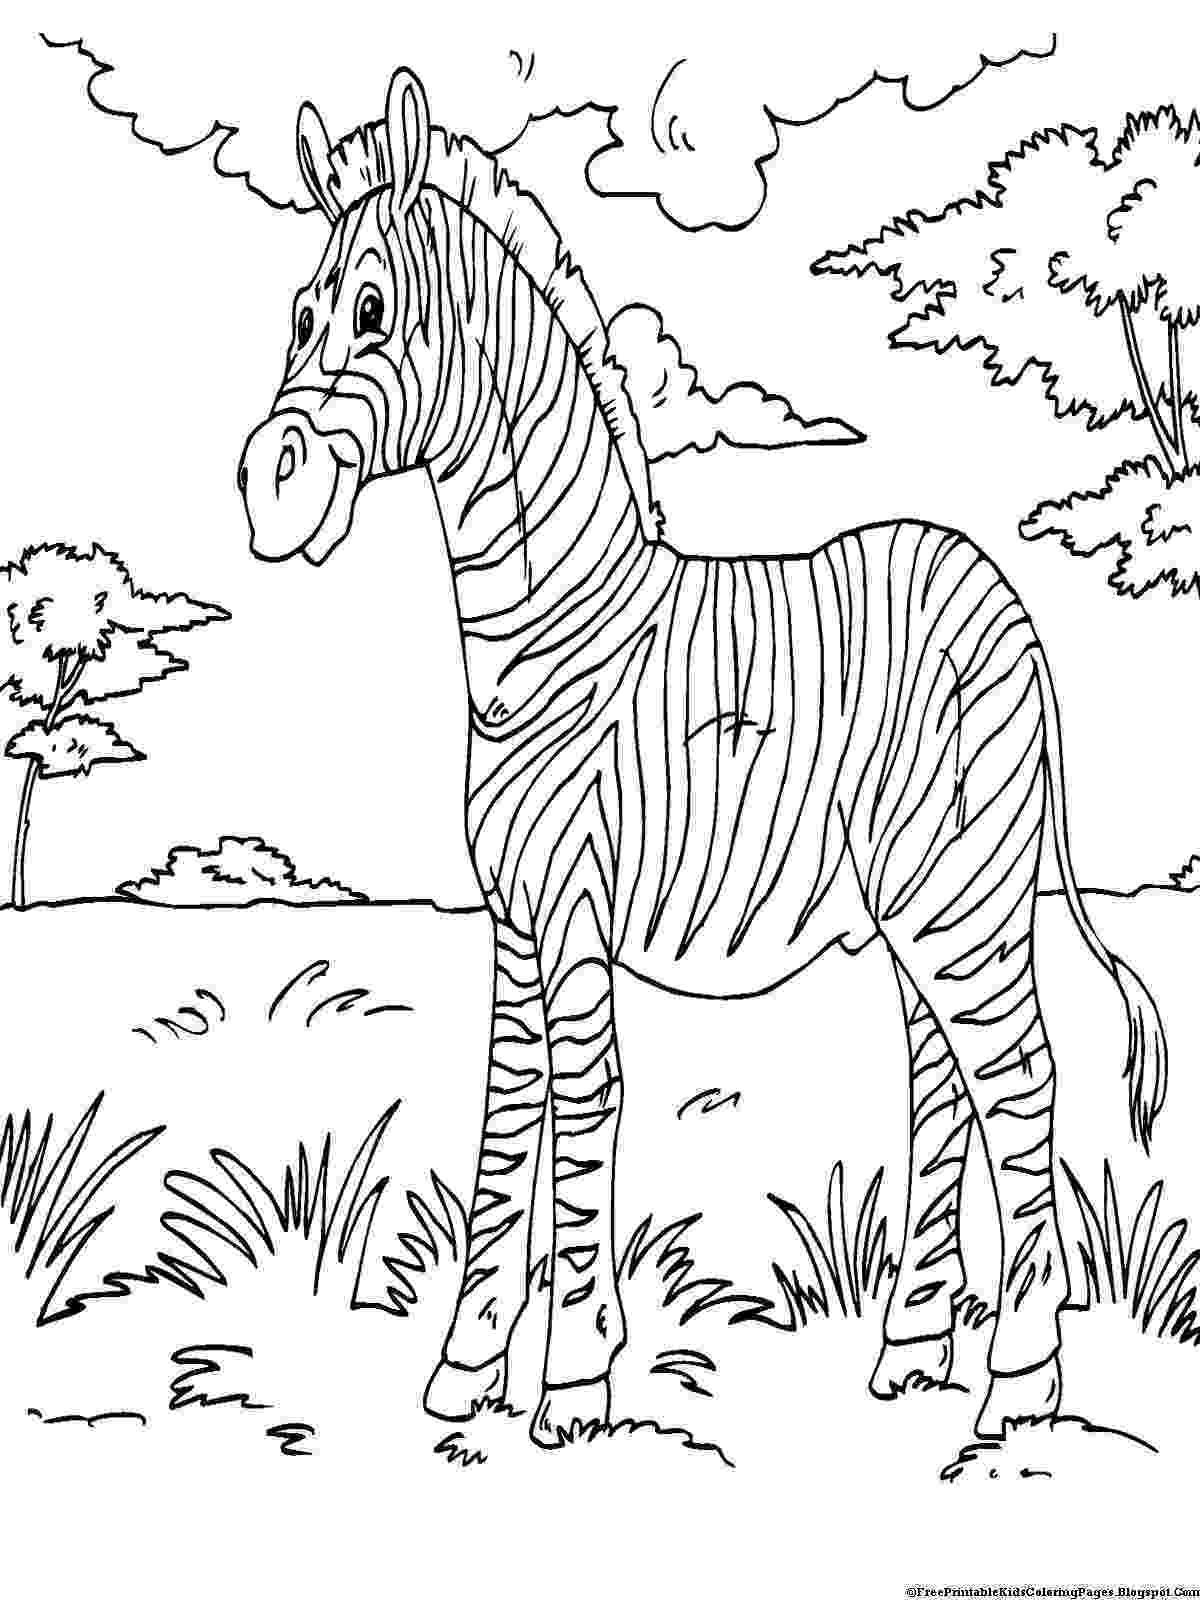 colouring book pages to print zebra coloring pages free printable kids coloring pages print to colouring book pages